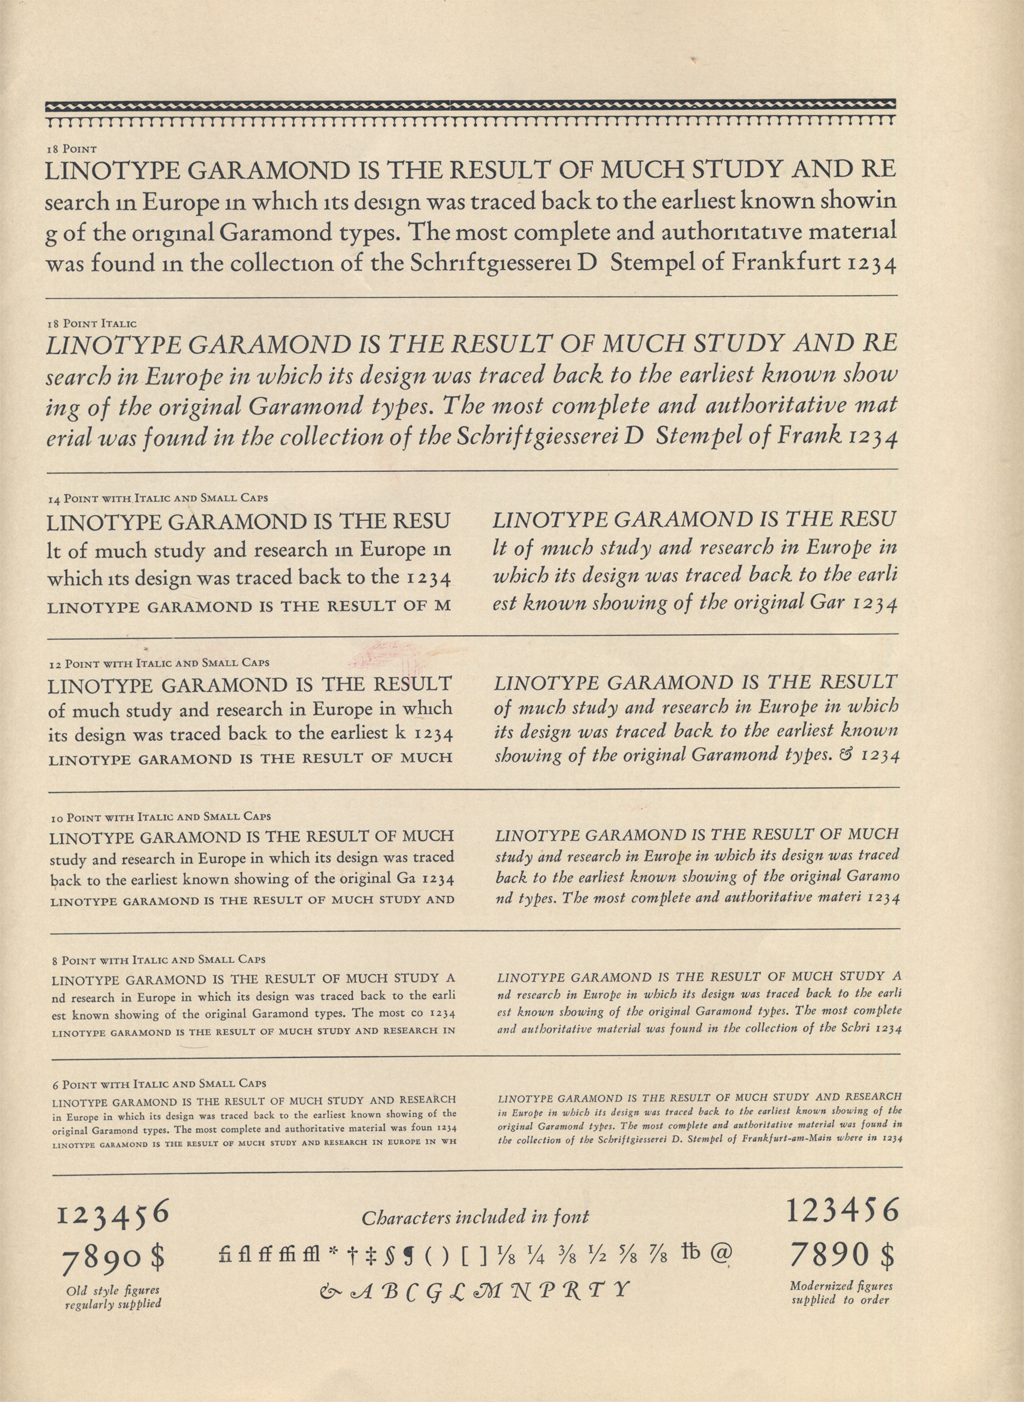 The Linotype Garamond Series in The Linotype Magazine (July 1926), p. 129.